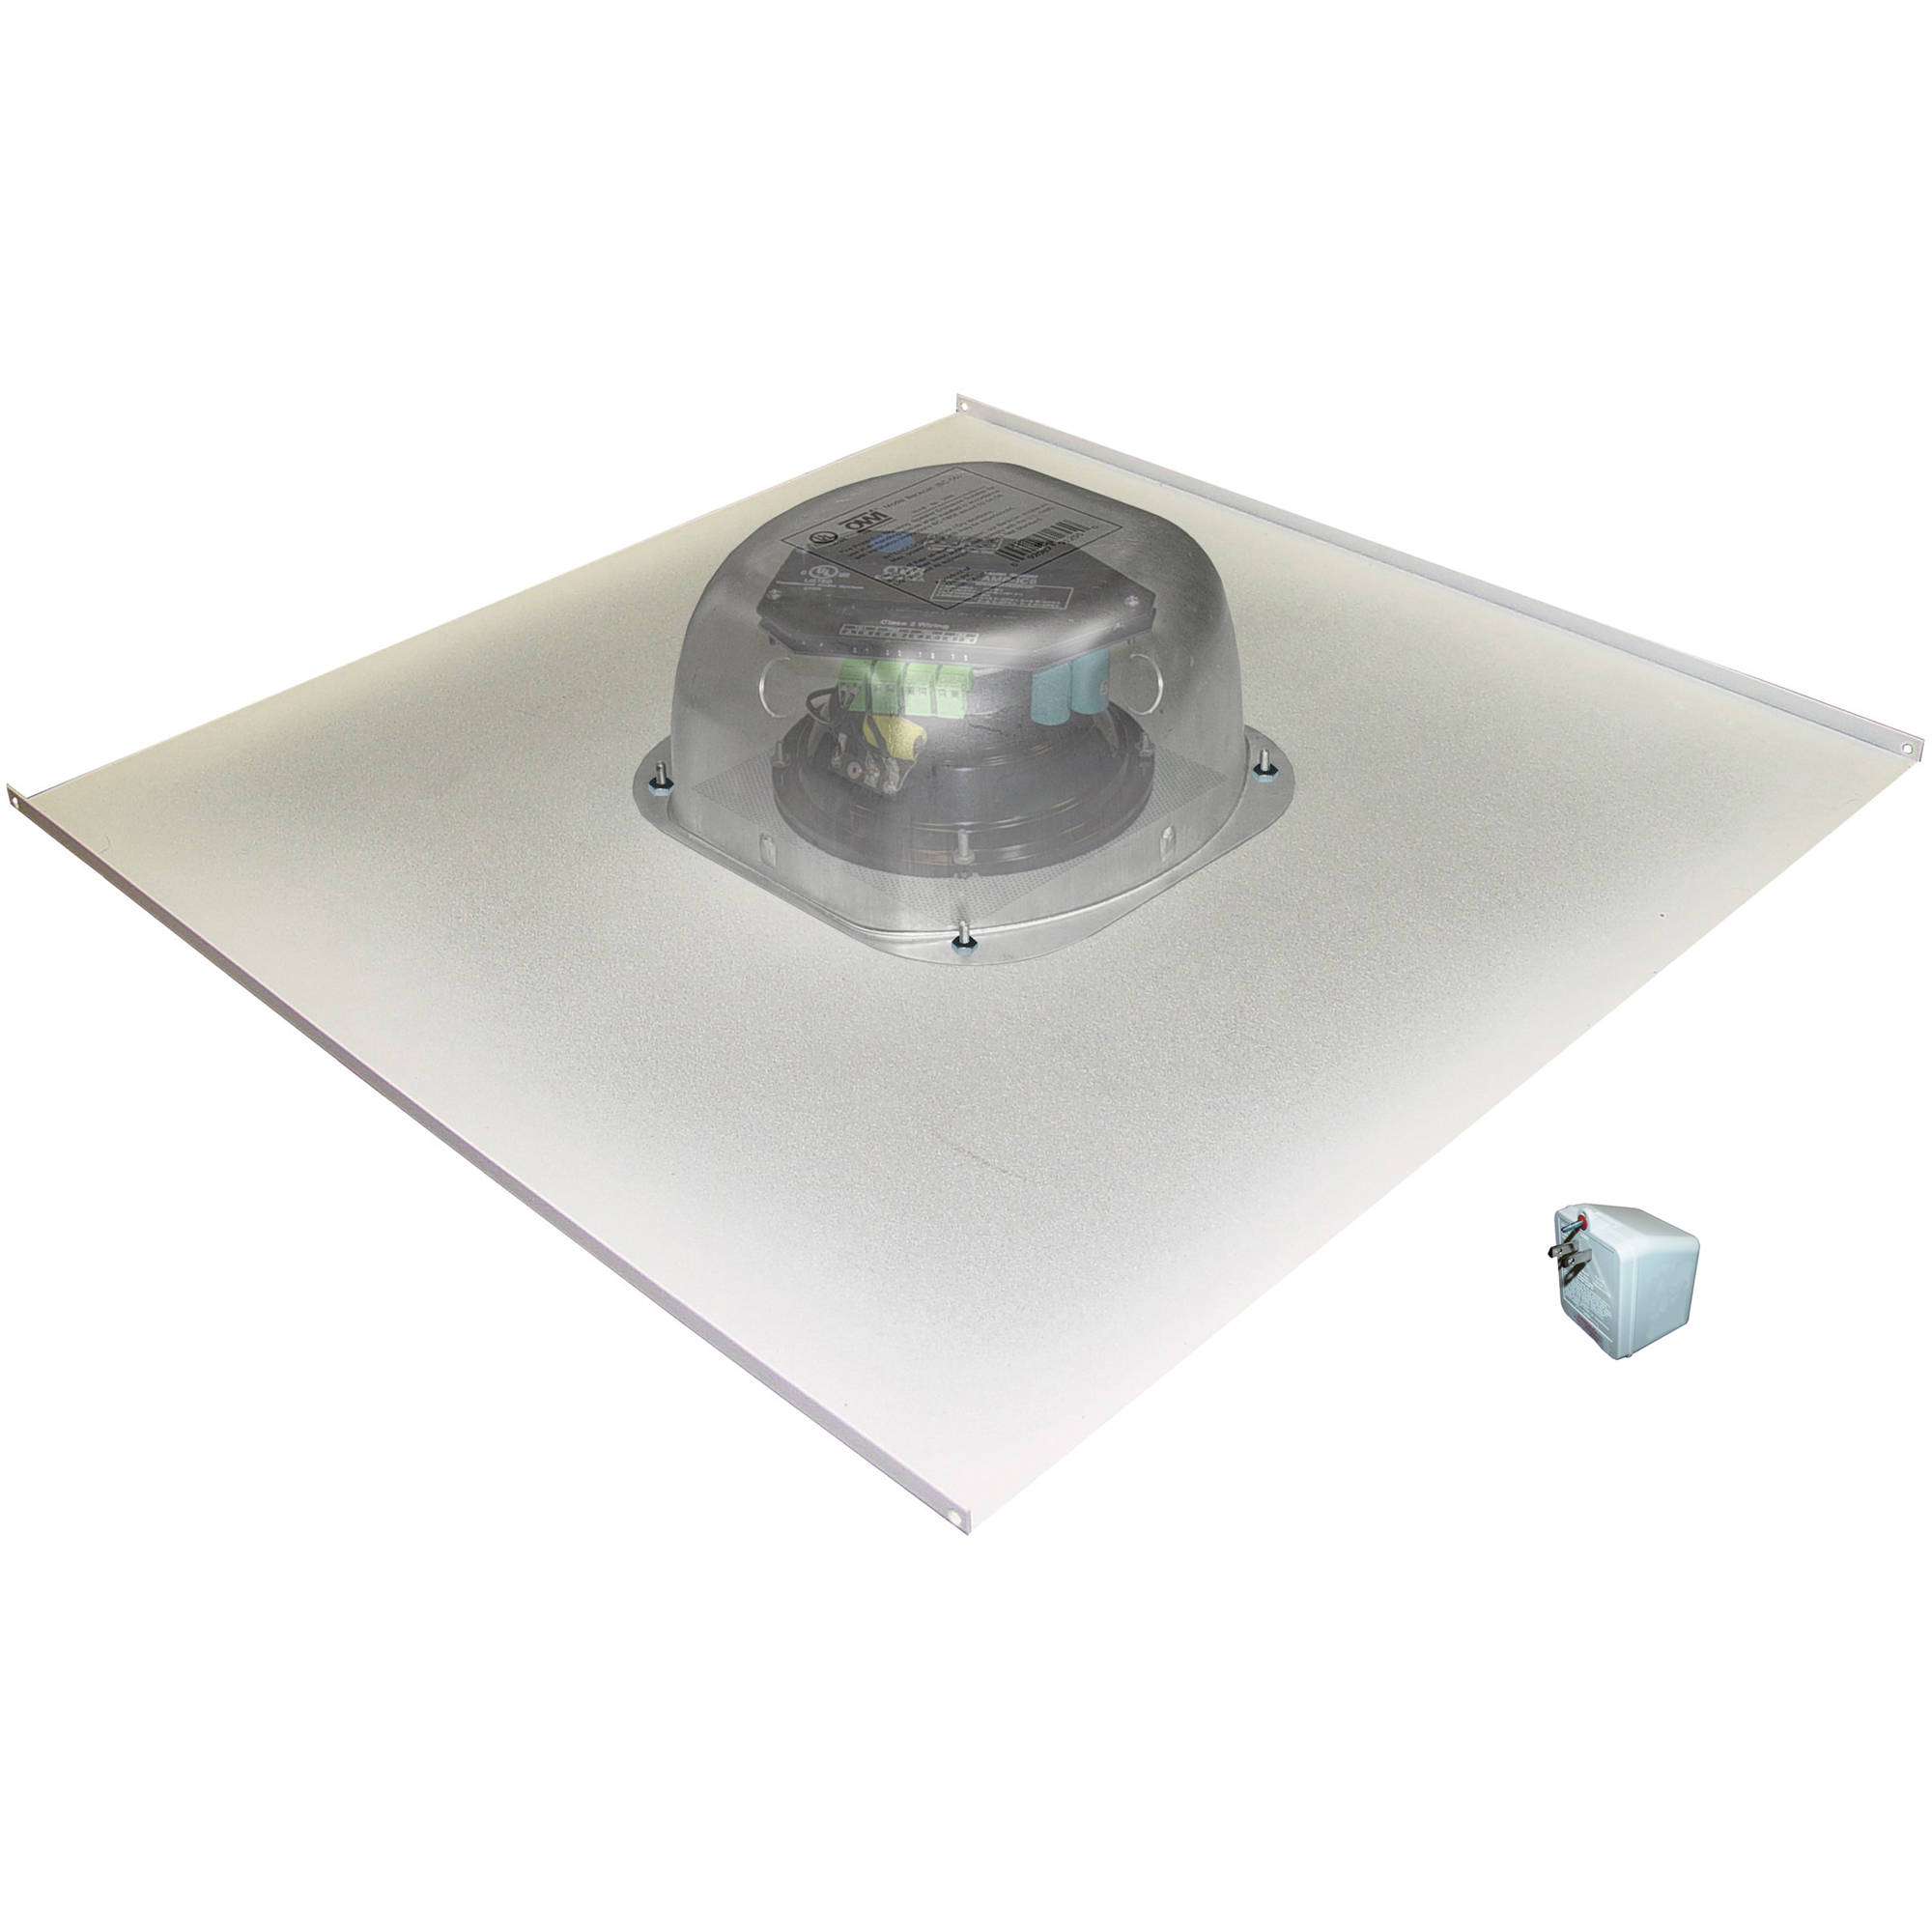 Owi Inc Amplified Drop Ceiling Speaker On A 2x2 Metal Tile